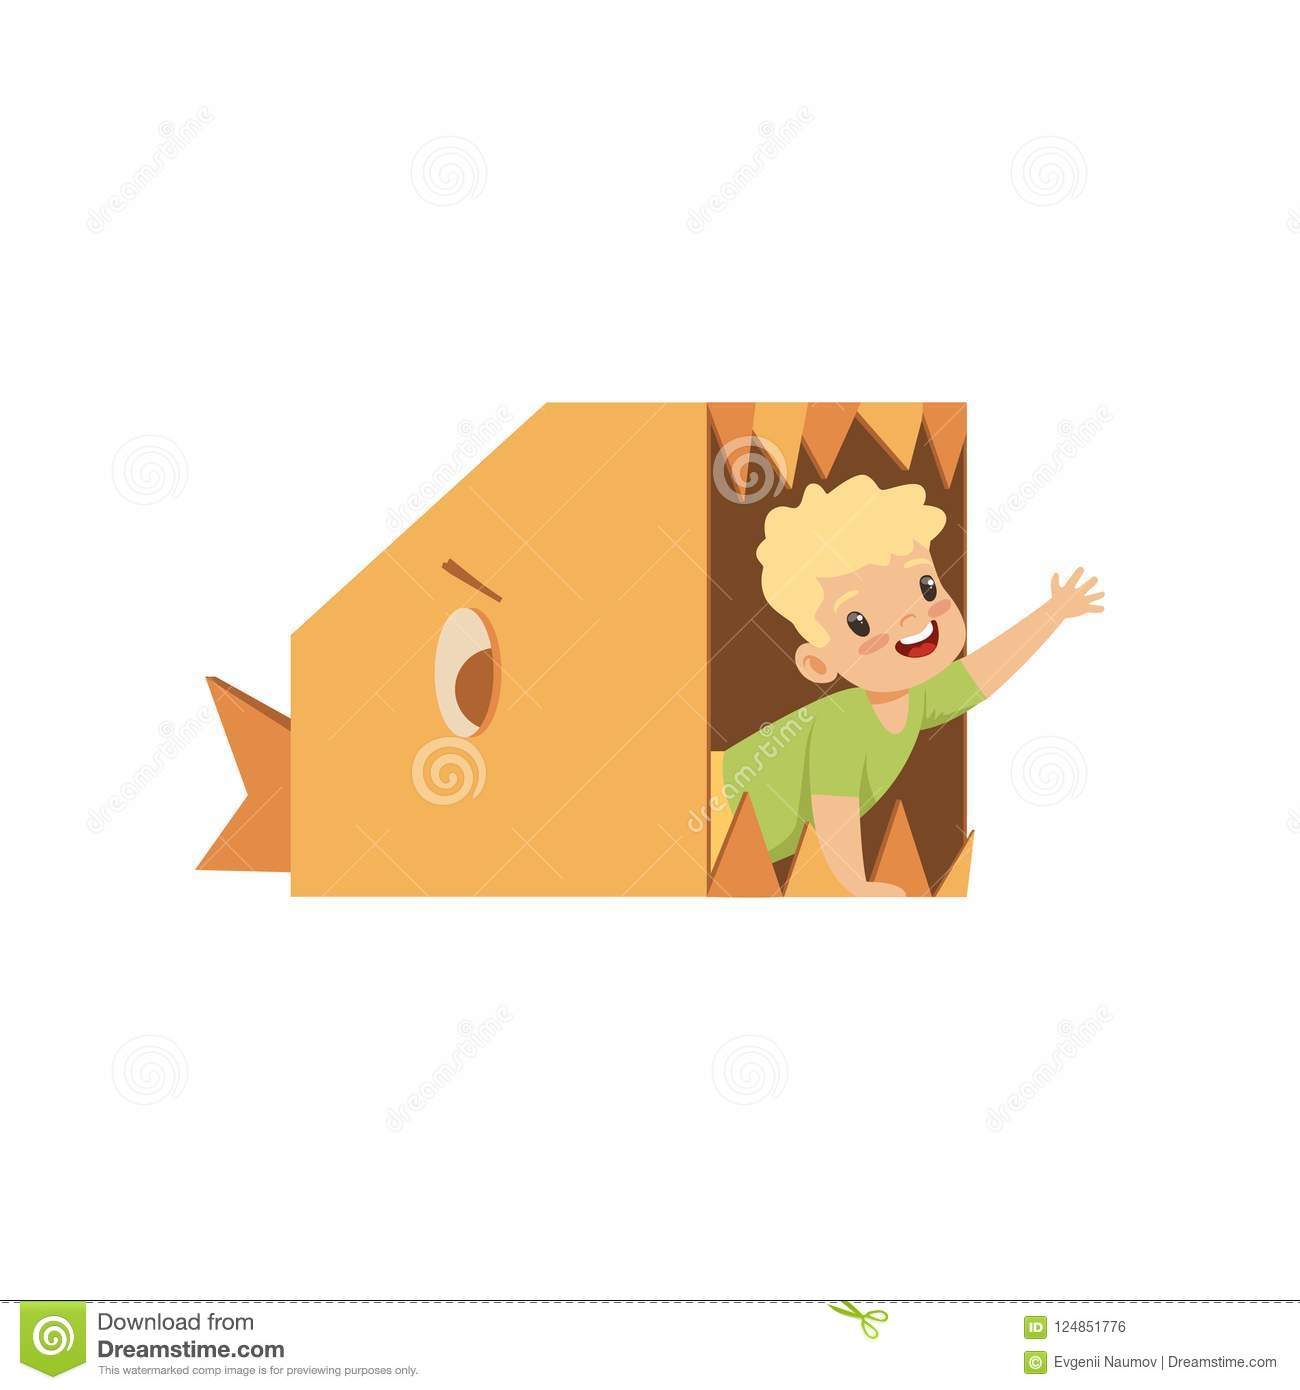 Cute boy playing inside a toothy fish made of cardboard boxes vector Illustration on a white background